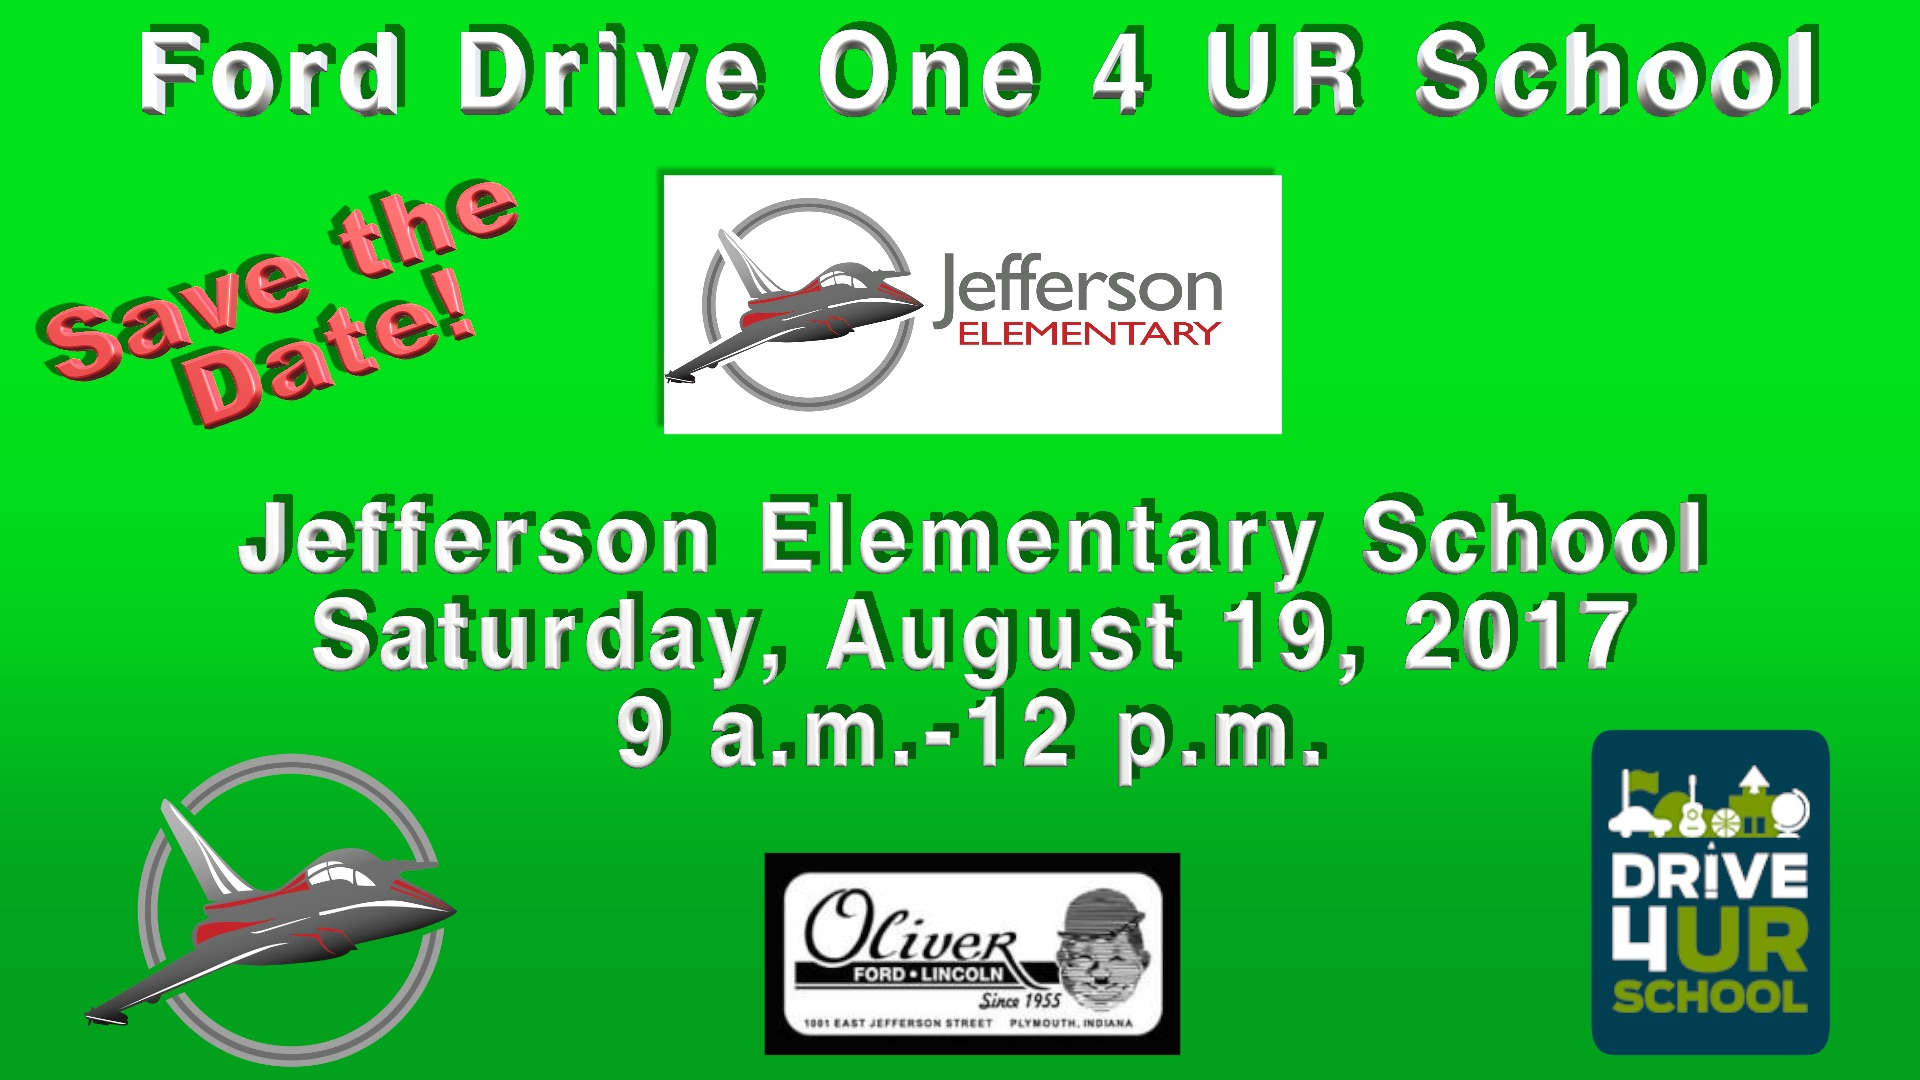 Ford Drive 4 UR School Information